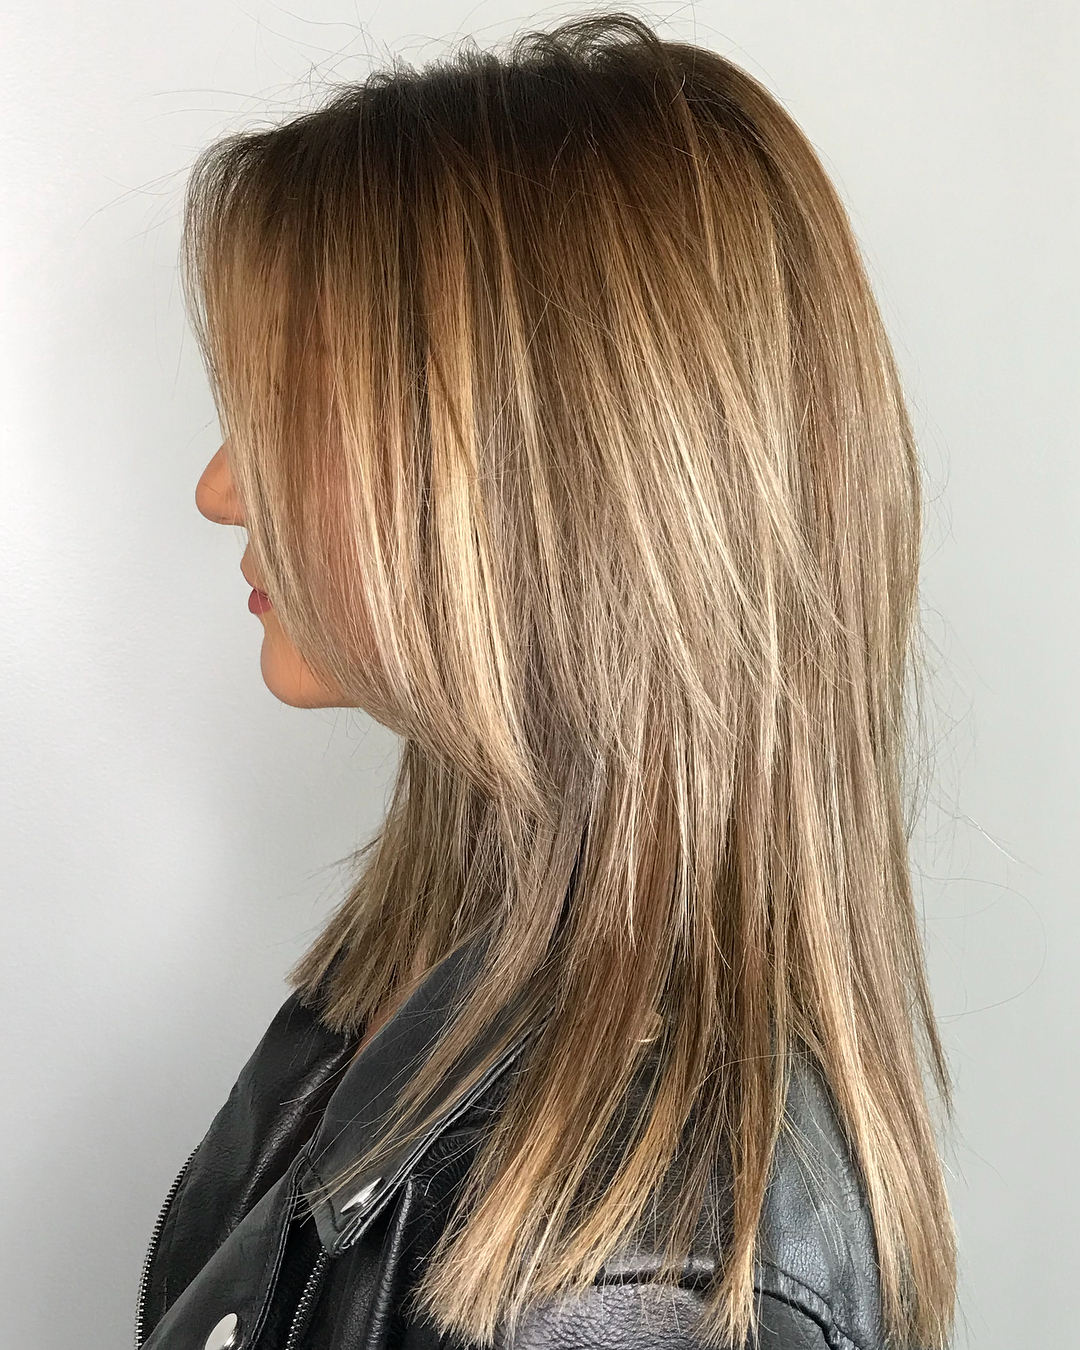 Two-Tier Cut with Bronde Balayage